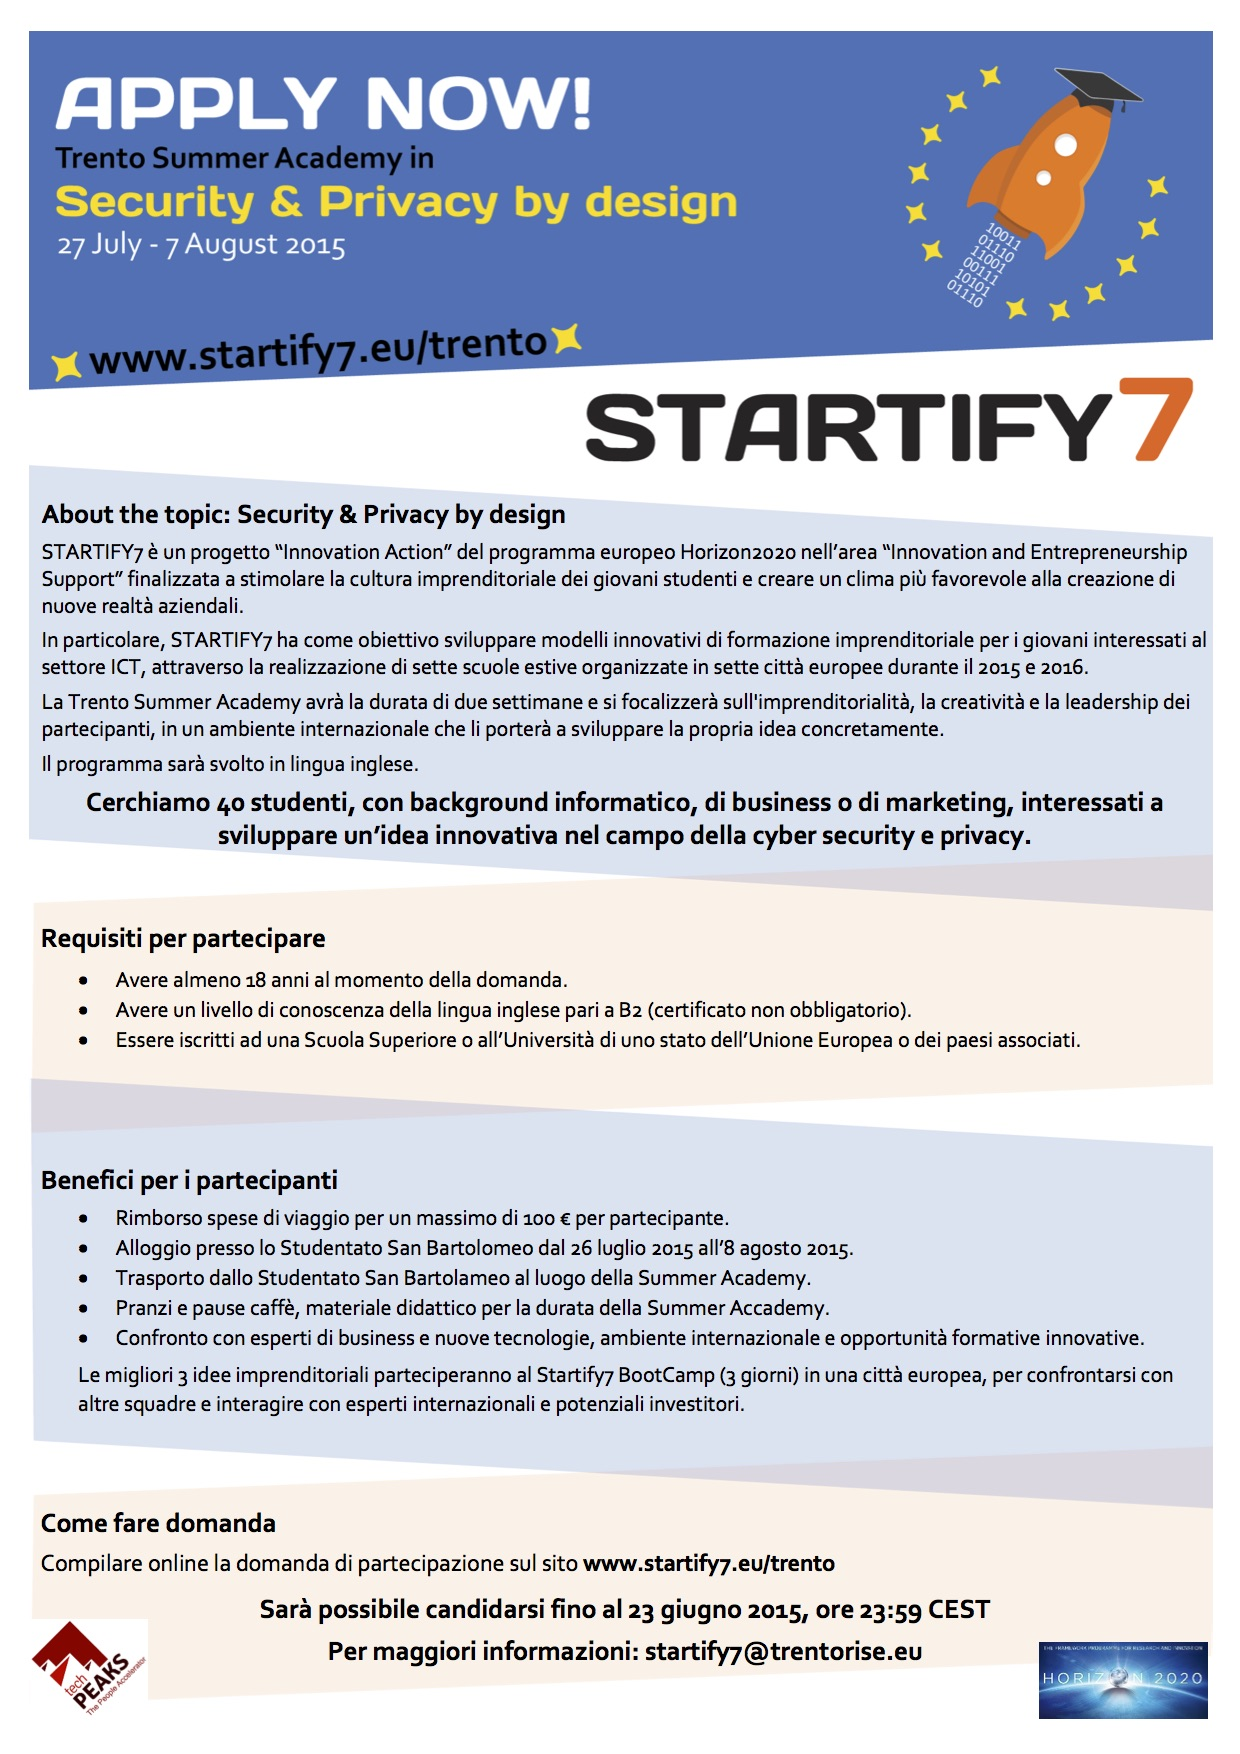 Startify7 - Security&Privacy by design Academy (IT)